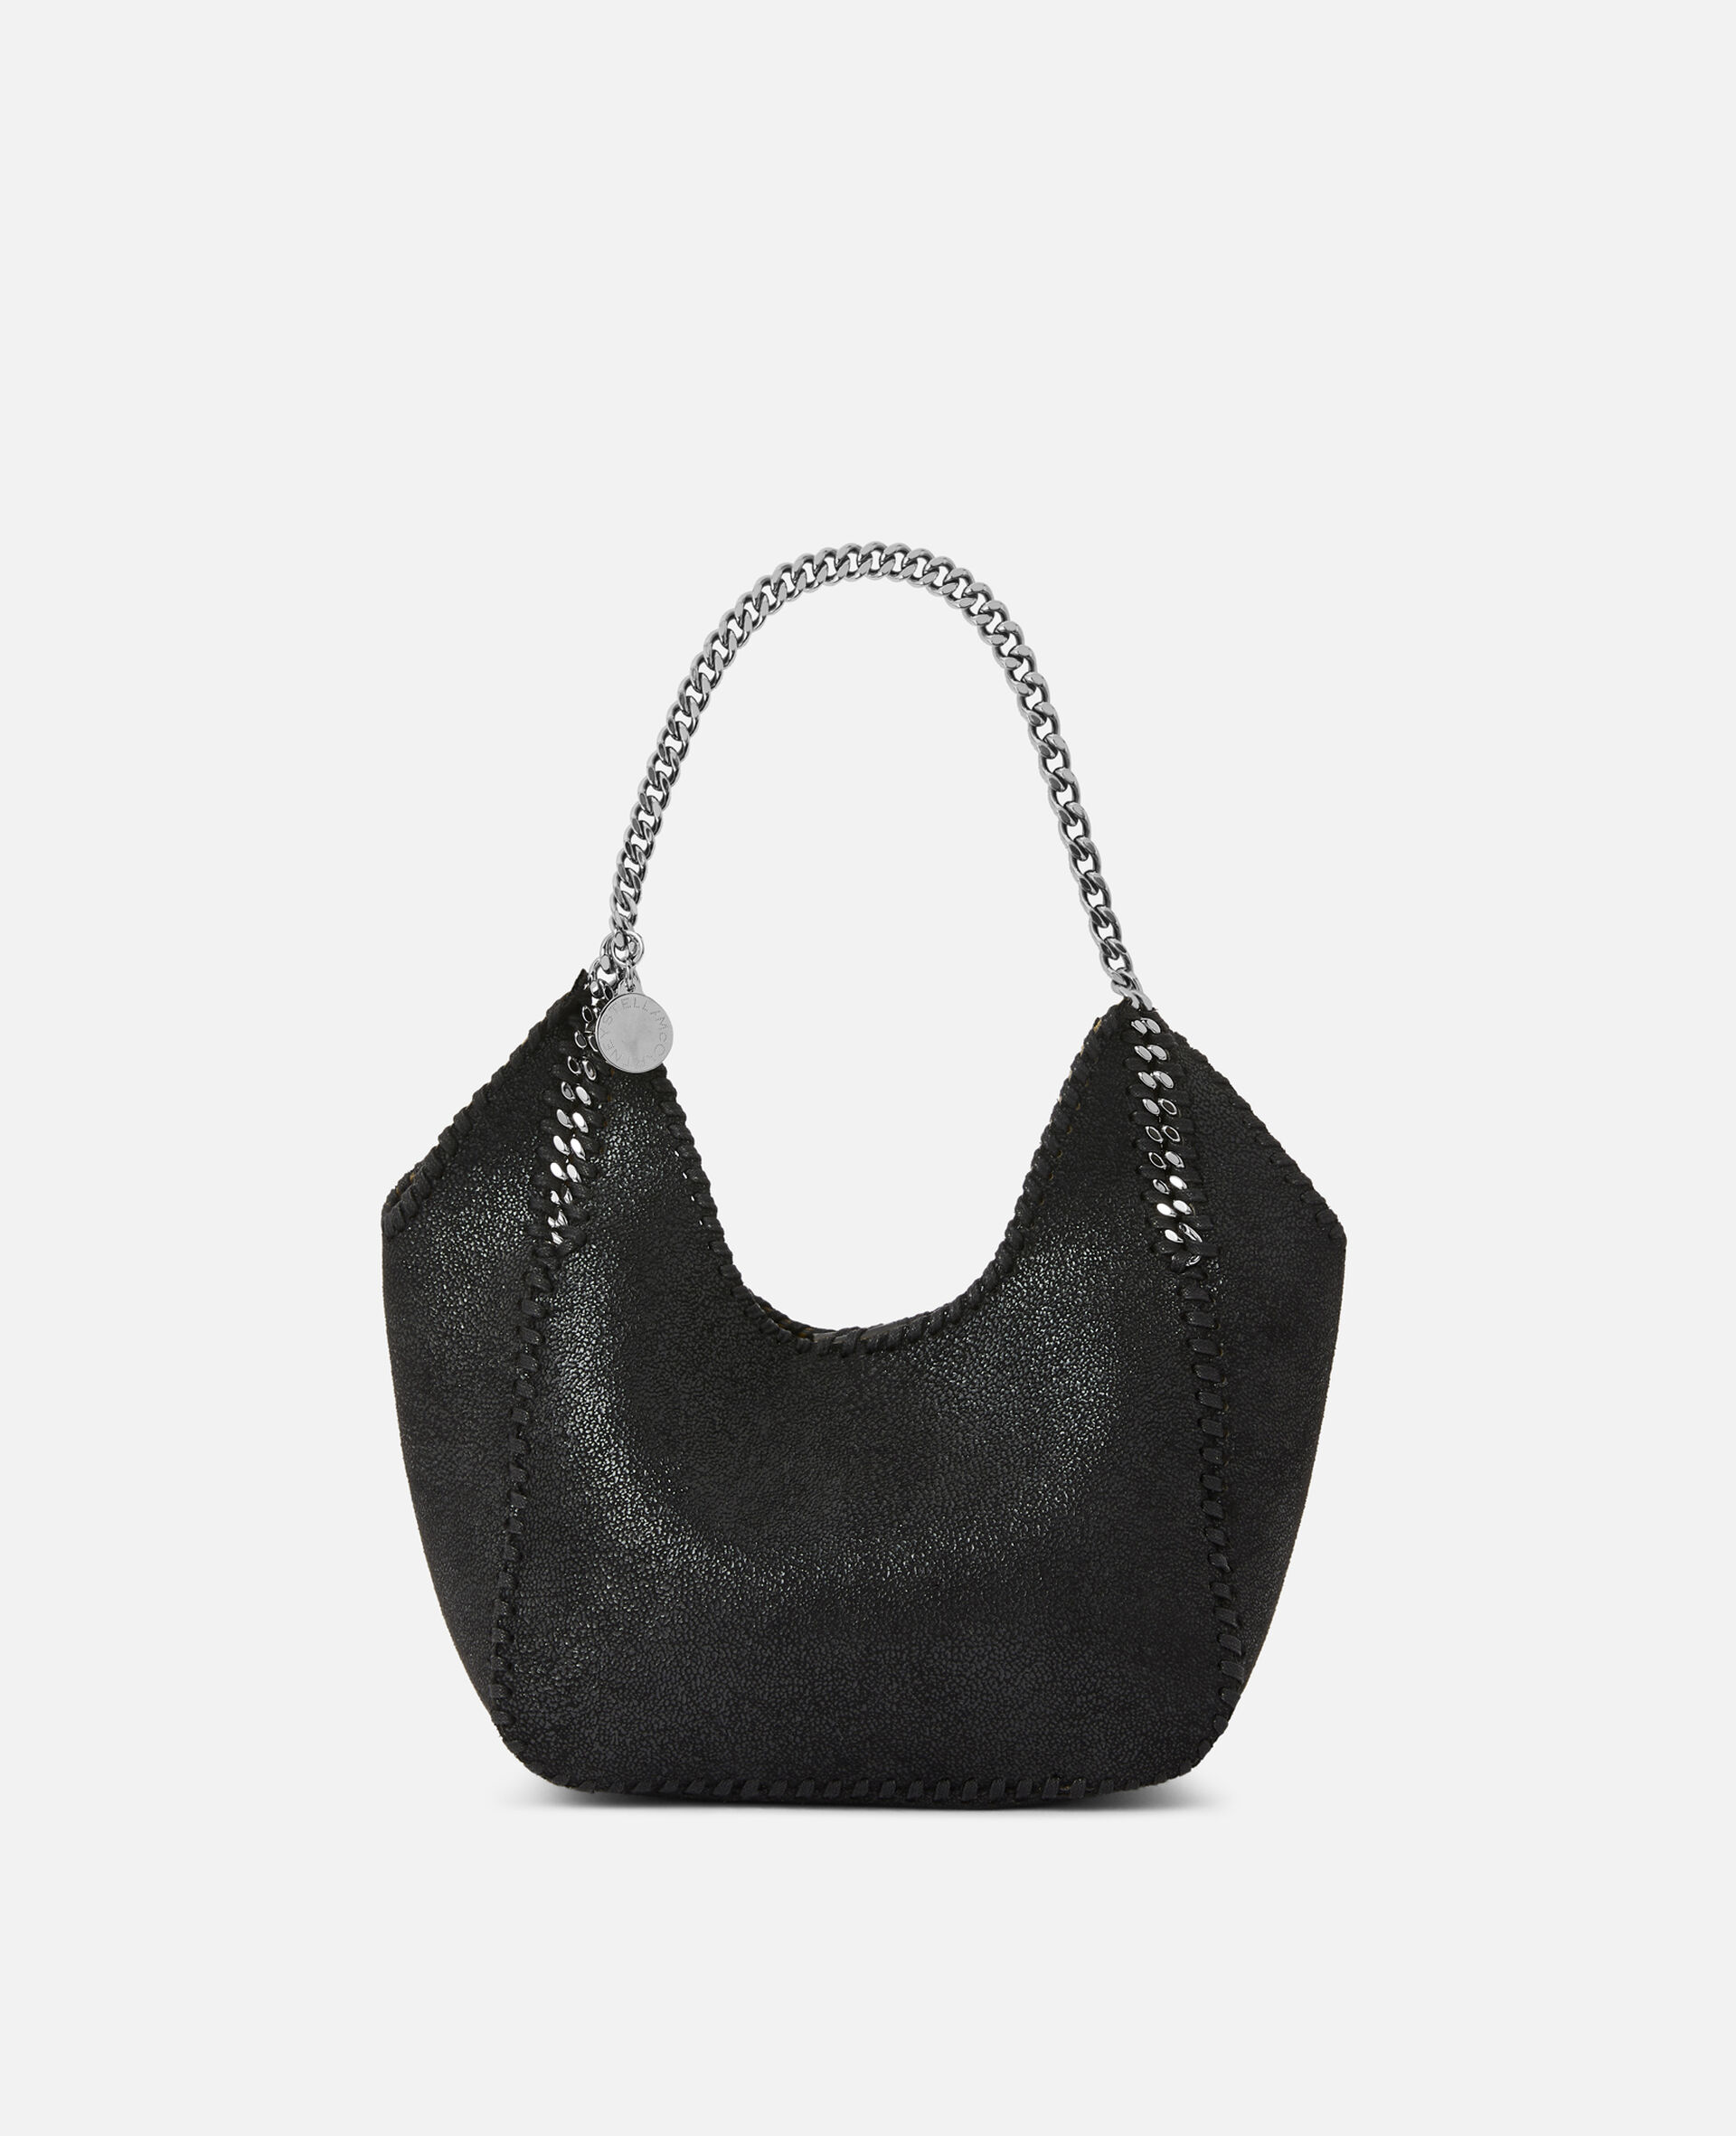 Falabella 迷你托特包 -黑色-large image number 0